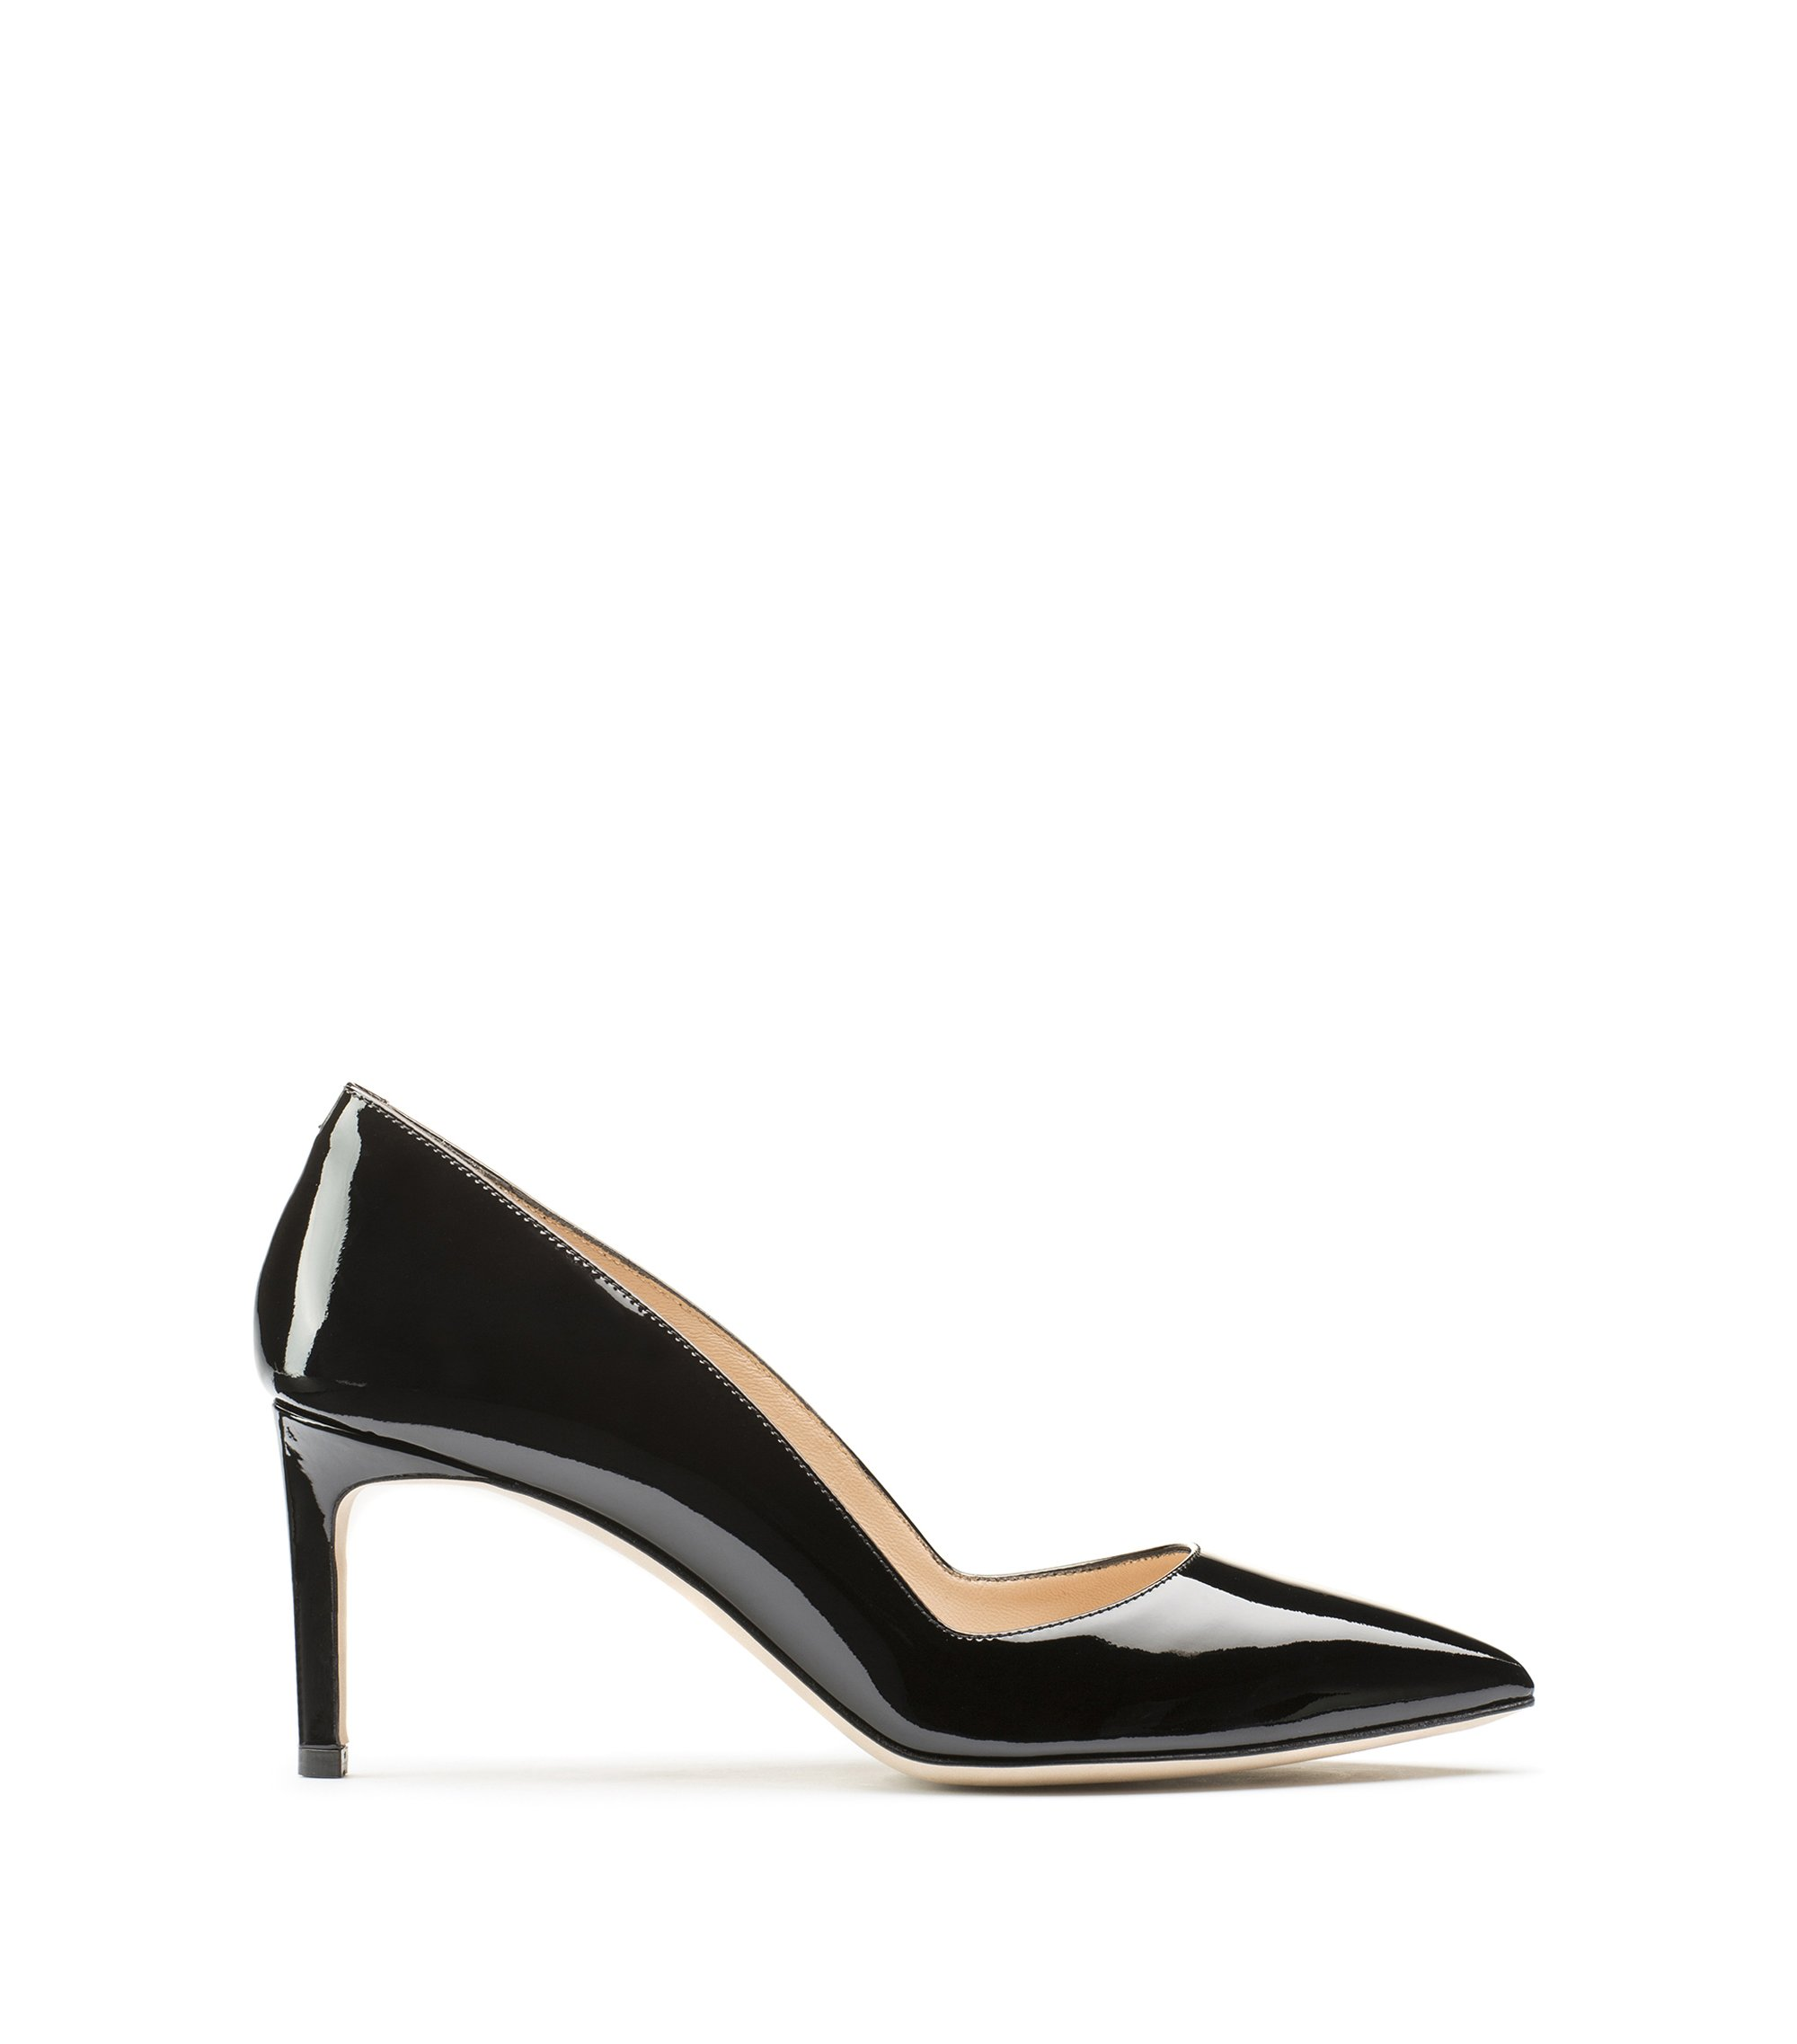 Pointed-toe pumps in patent leather, Black